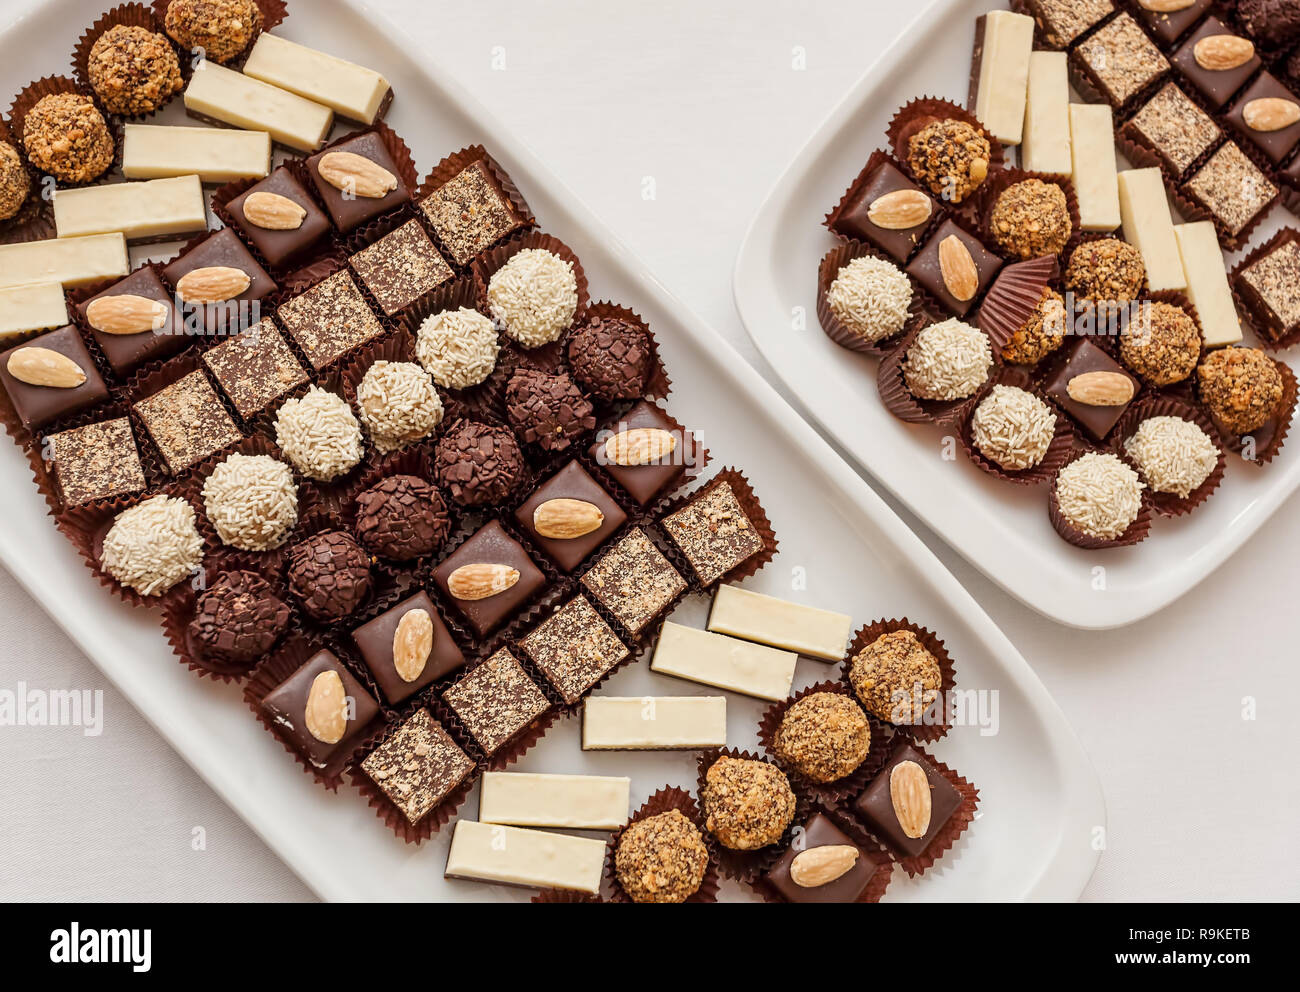 Small chocolate and vanilla layered cakes in rows on candy buffet. Sweet paradise. Top view. - Stock Image